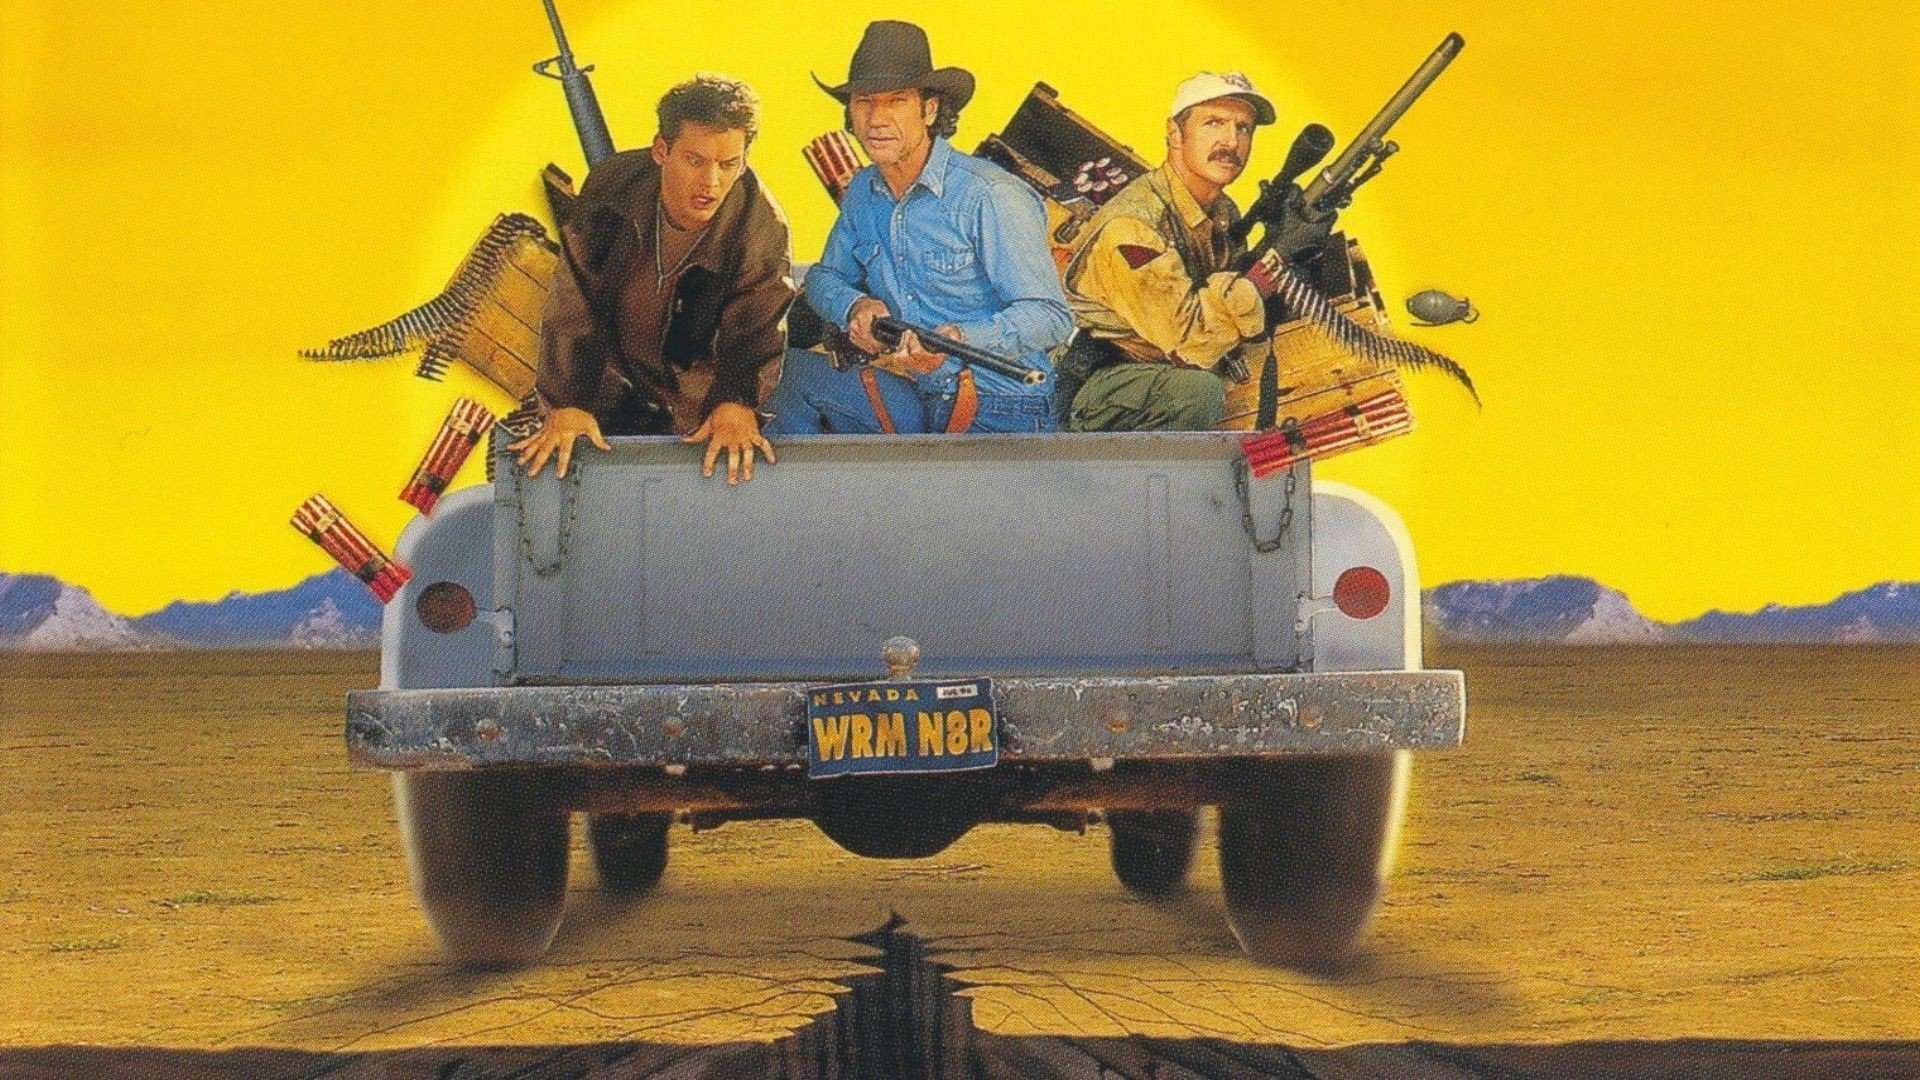 Regarder Tremors 2: Les Dents de la Terre en streaming gratuit